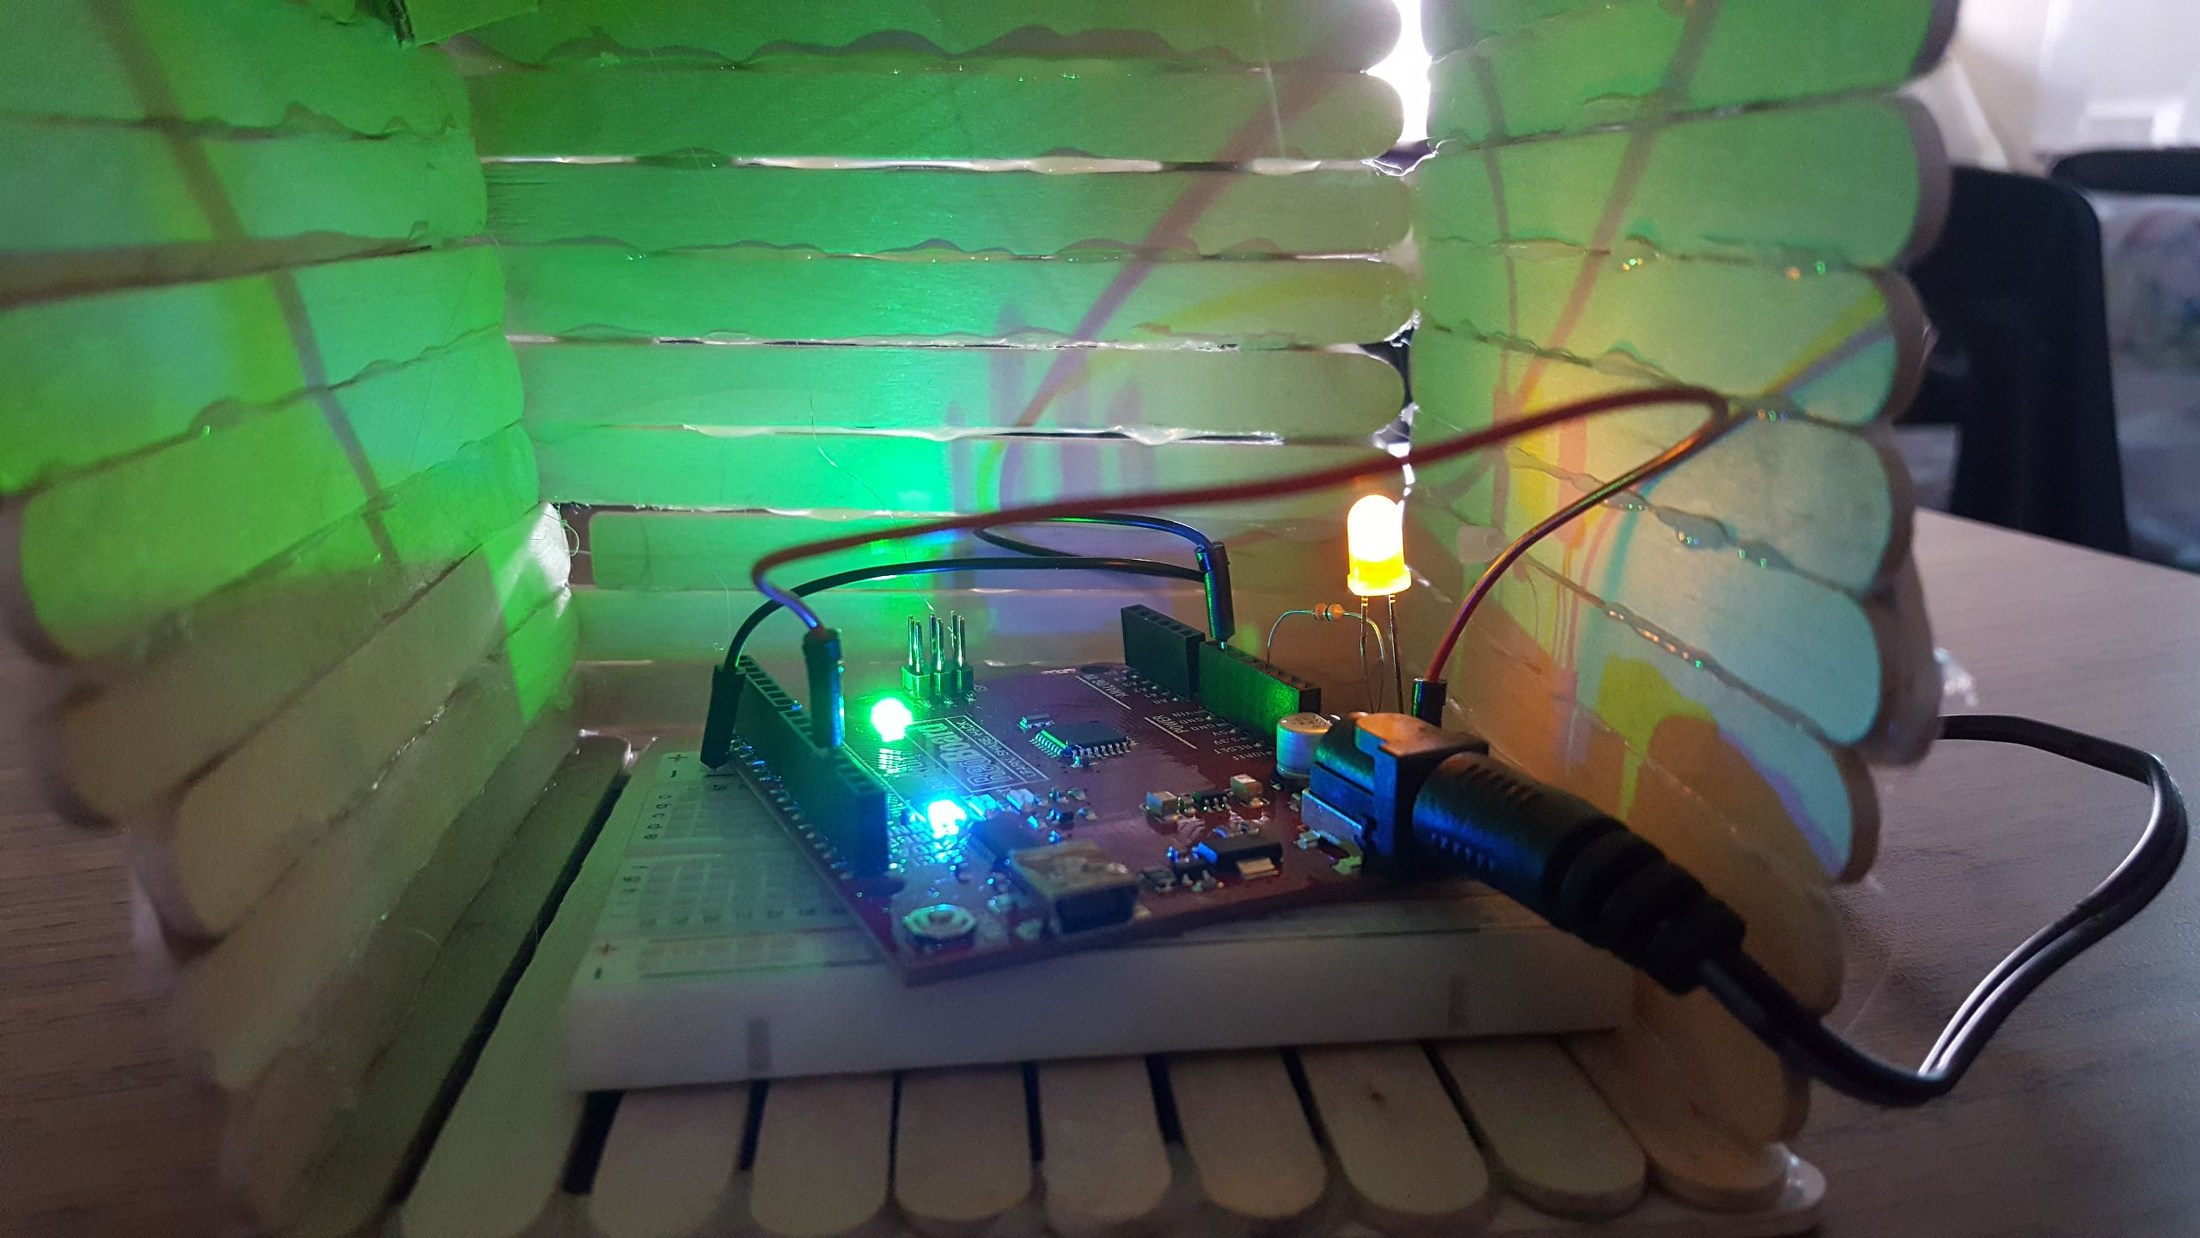 Light Sculpture using RedBoard Arduino